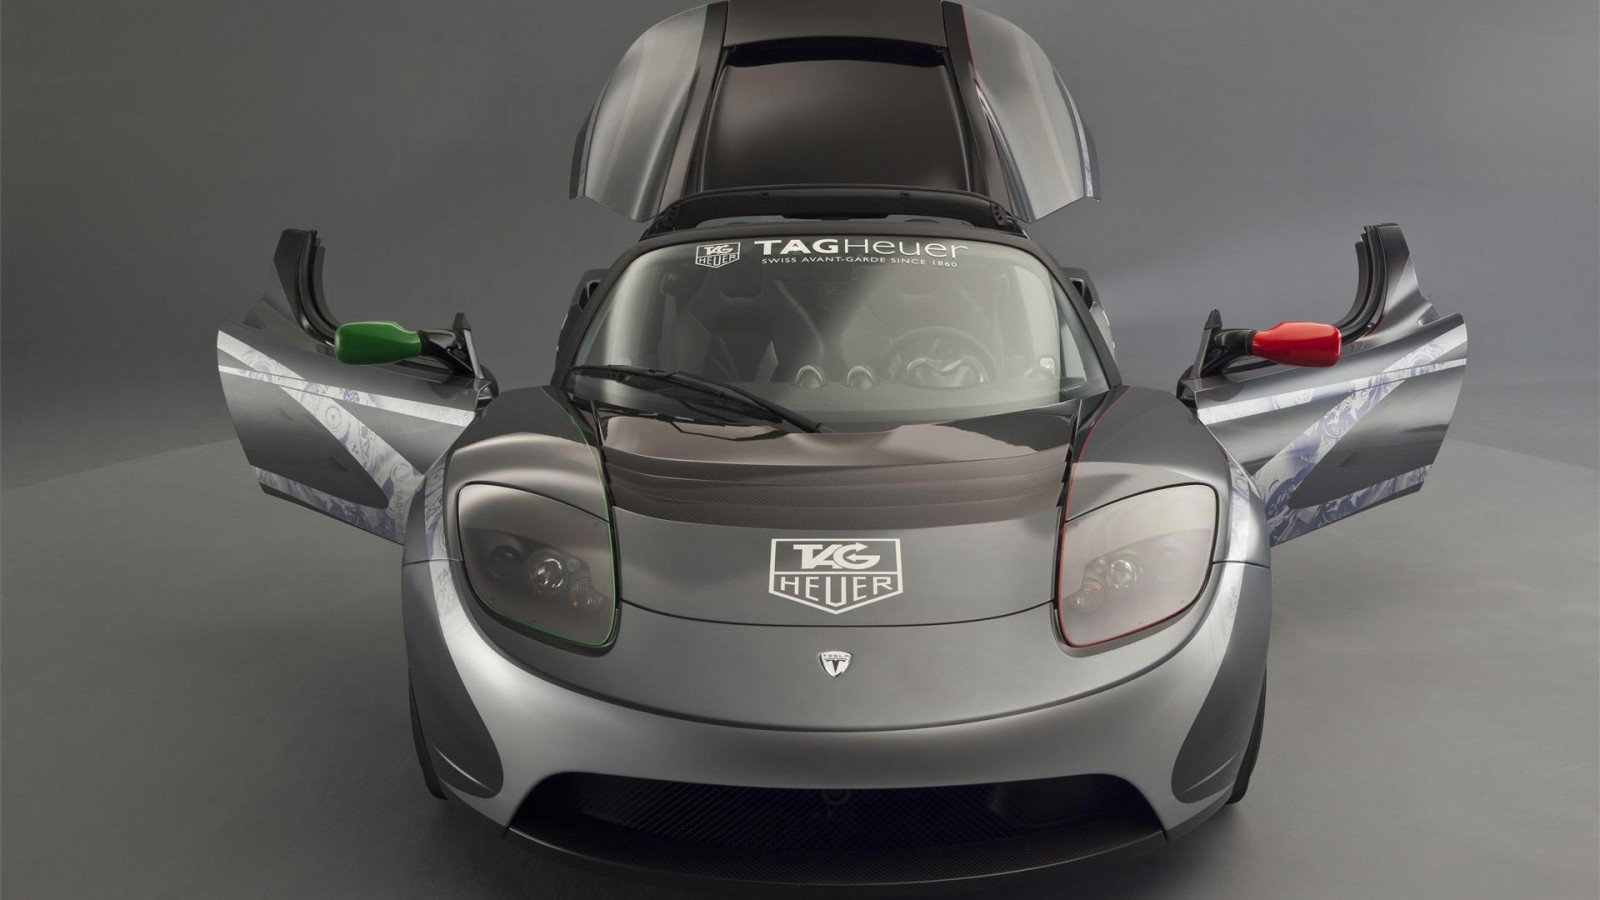 2017 Tesla Roadster TAG Heuer photo - 1